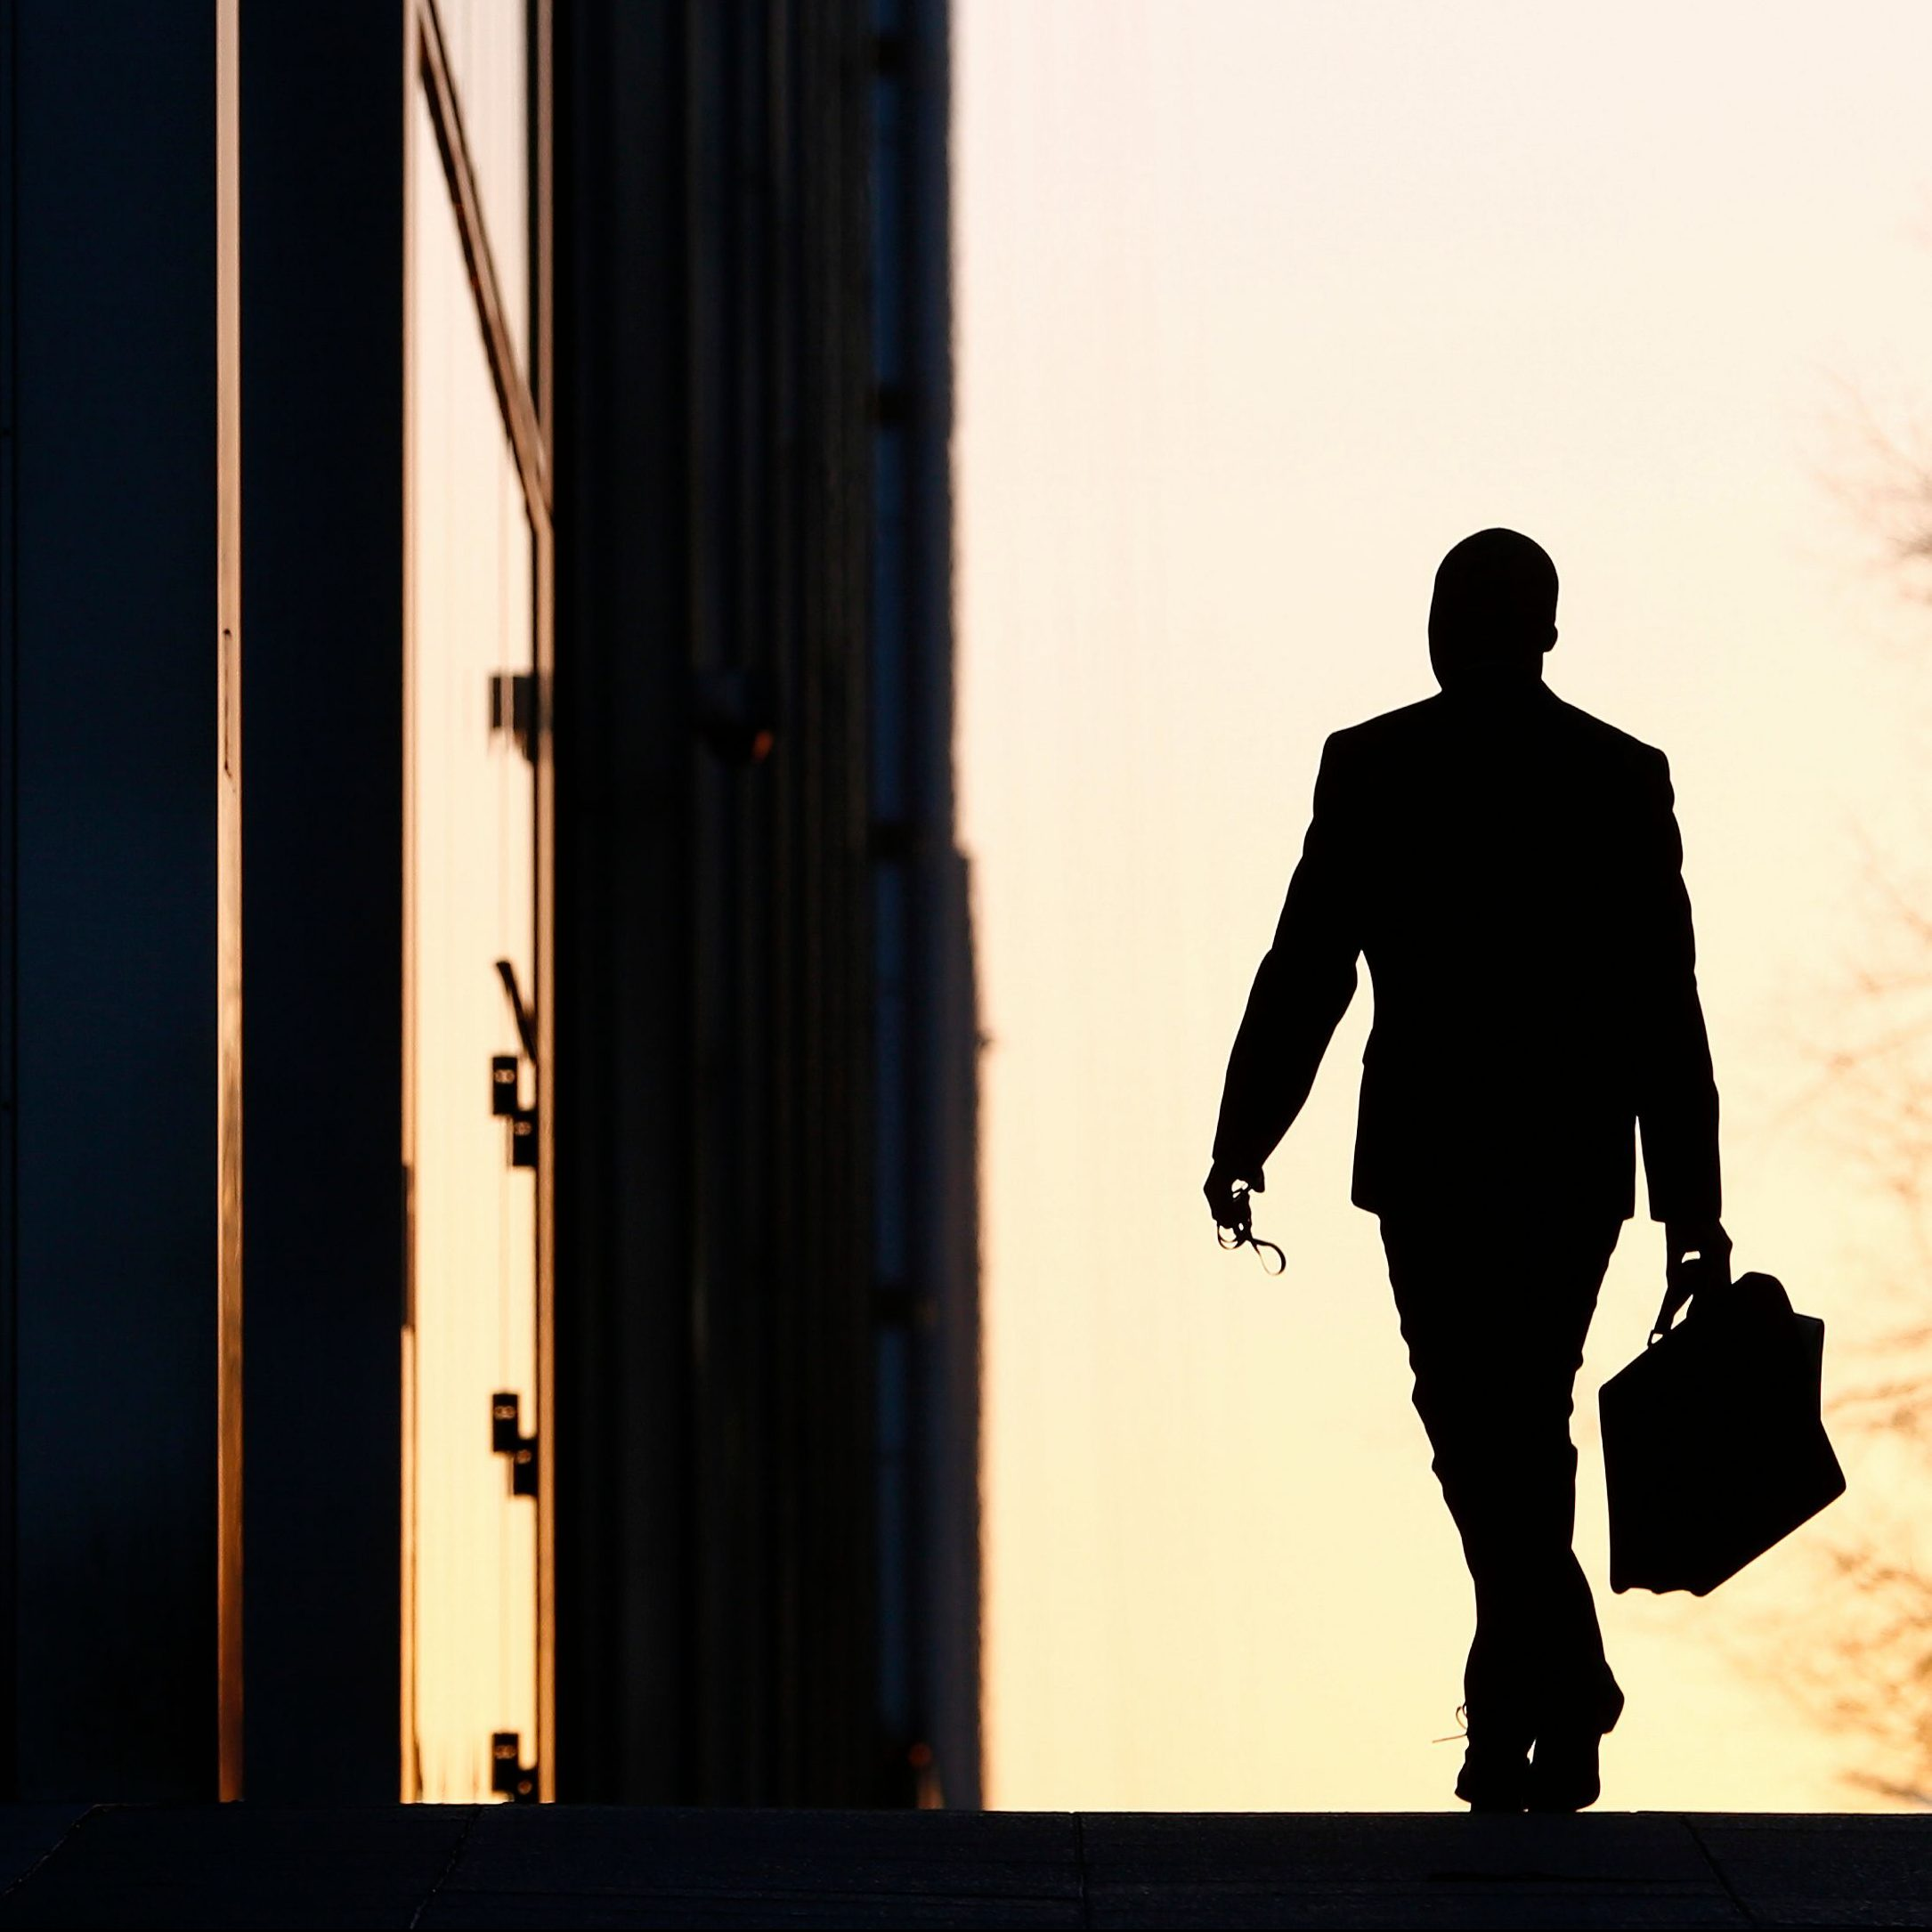 A worker arrives at his office in the Canary Wharf business district in London February 26, 2014.